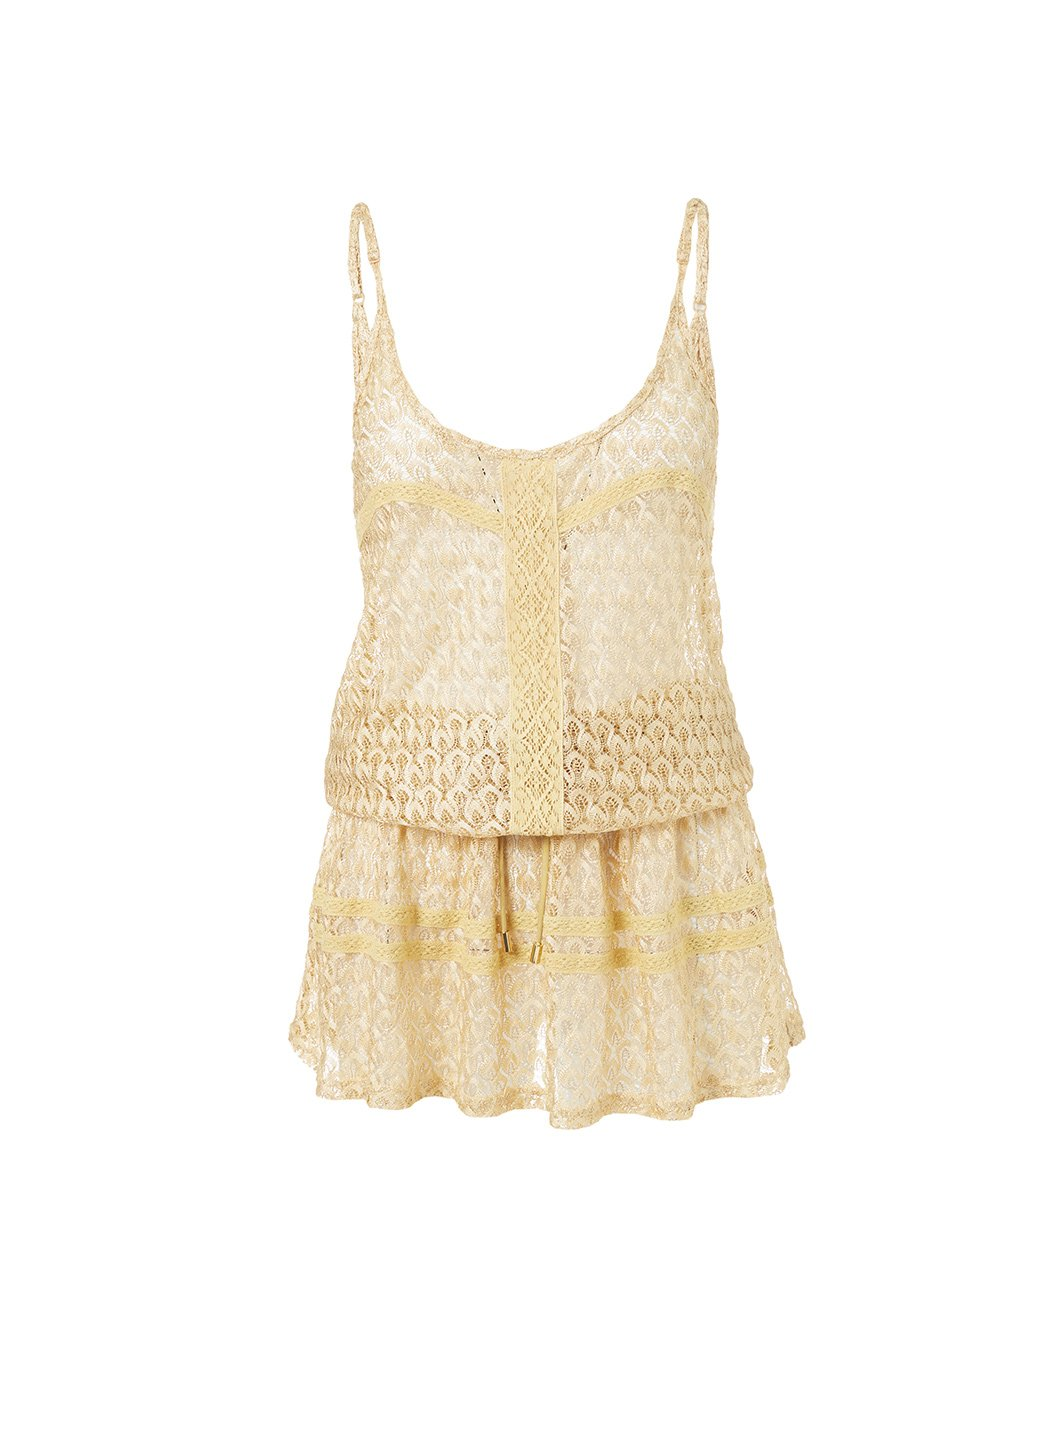 khloe gold crochet overtheshoulder short beach dress 2019